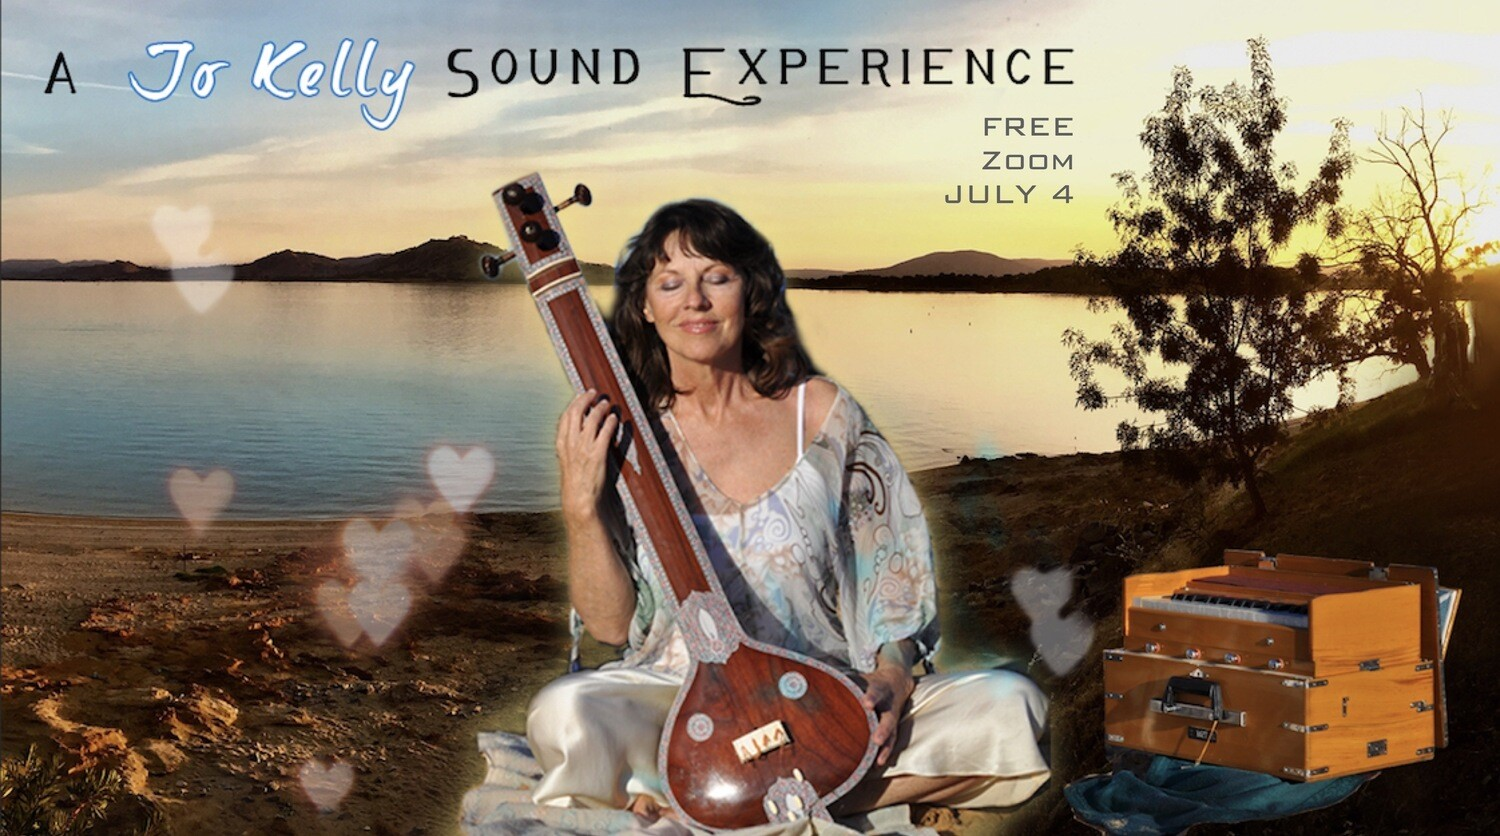 Sound Experience FREE Zoom Session July 4